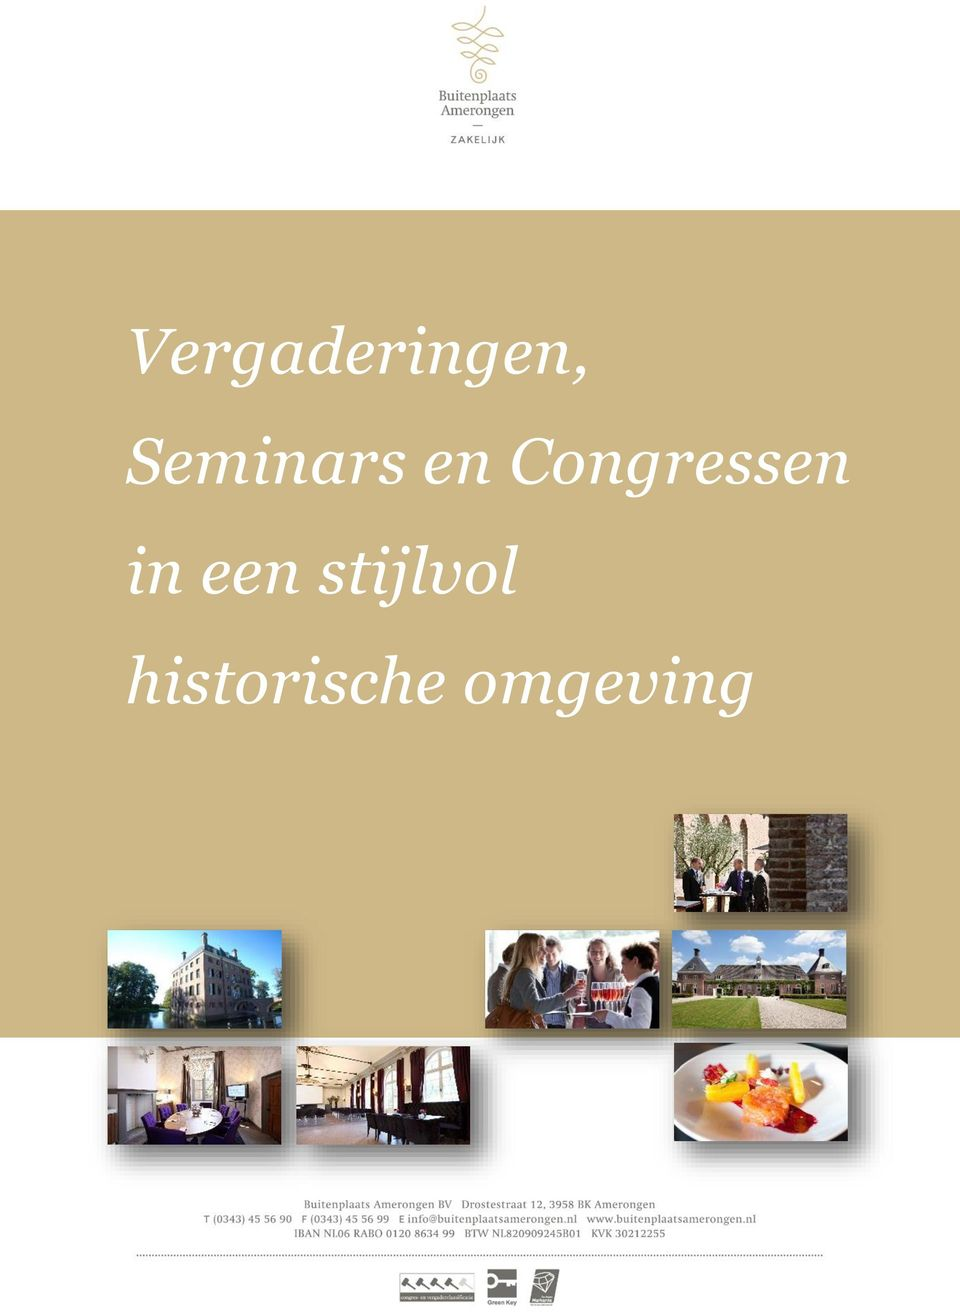 Congressen in een